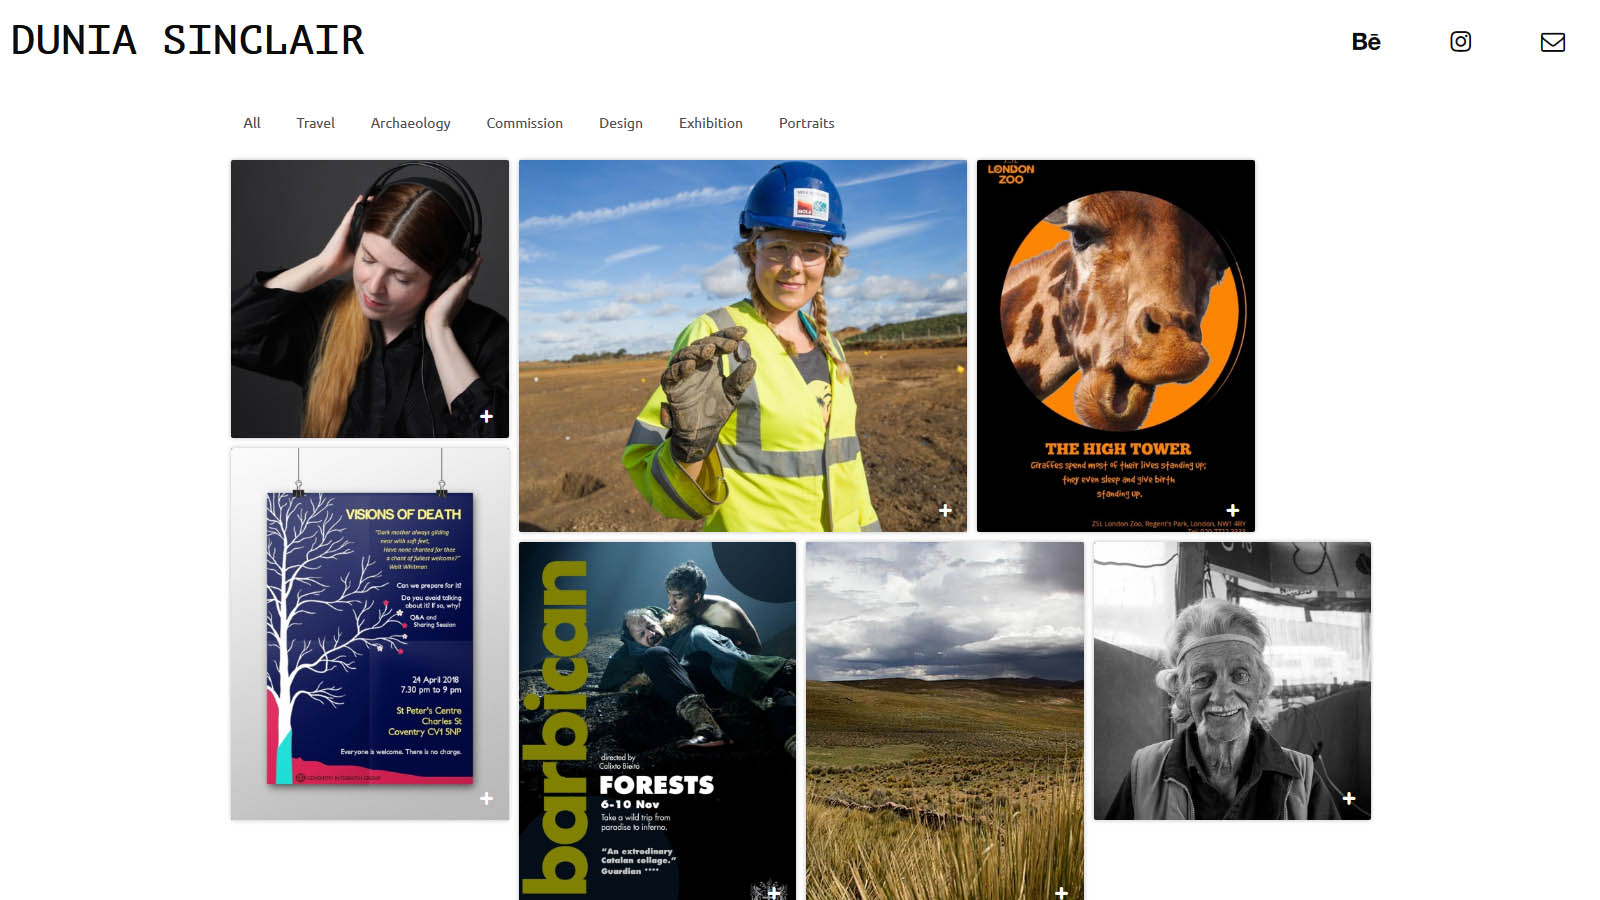 A bold, big front page leads to a simple and basic photography and graphic design portfolio website